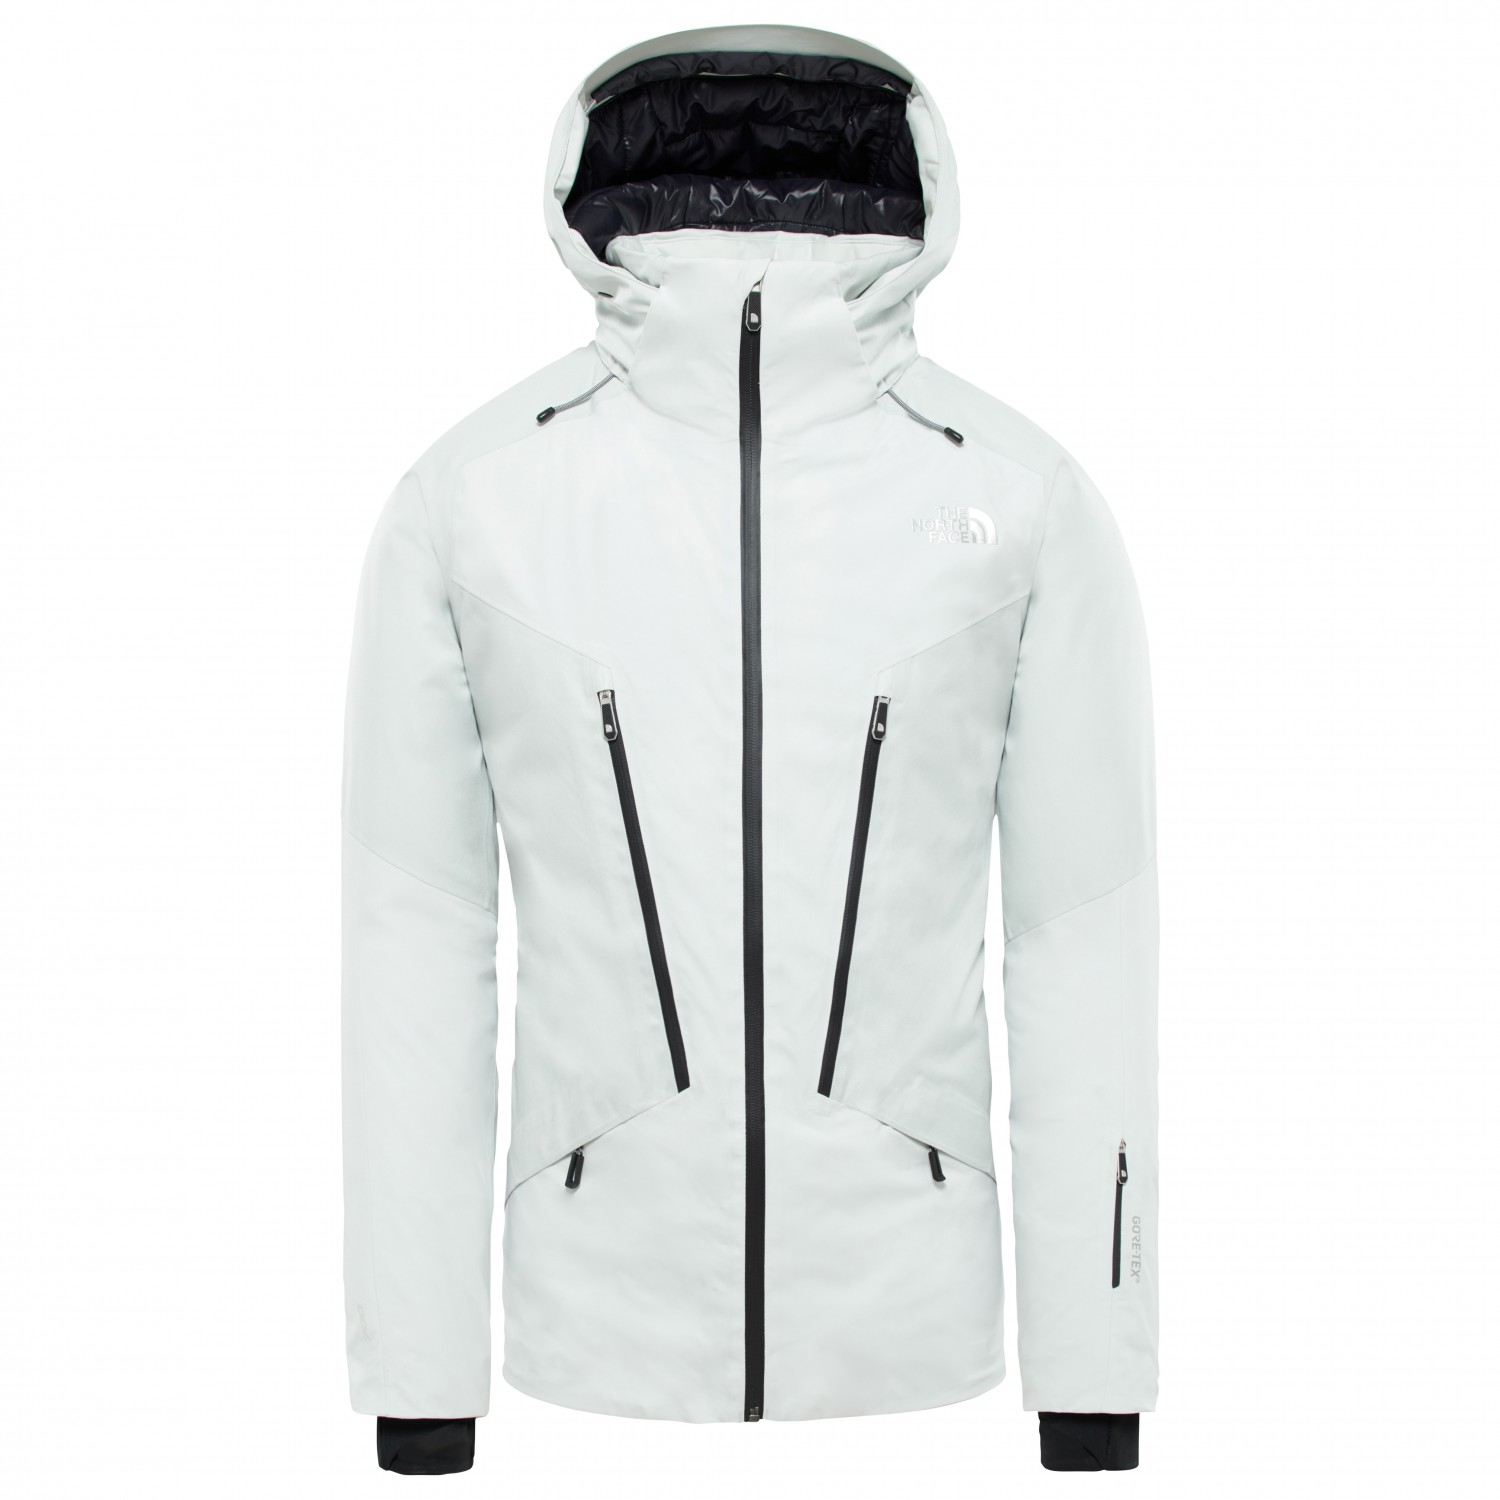 fd36313a3 The North Face Diameter Down Hybrid Jacket - Ski jacket Men's | Buy ...